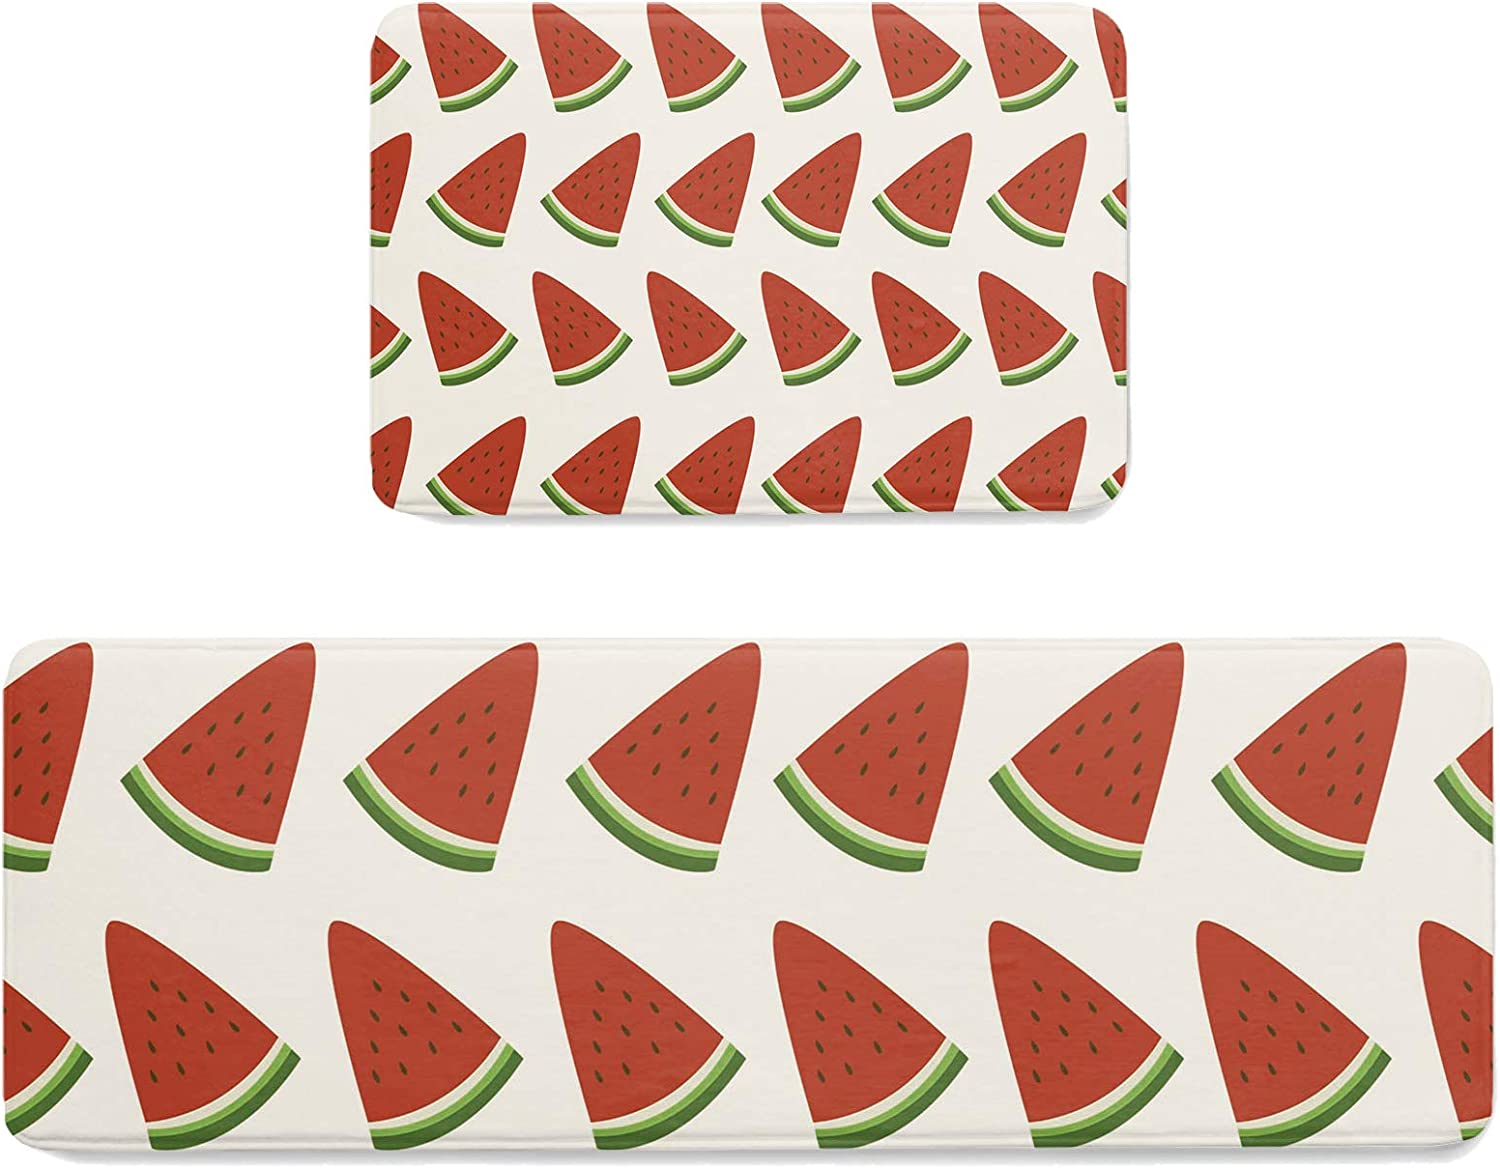 LALADecor 2 Piece Kitchen Popular popular Department store Rugs and Watermelon Summer Mats Time T